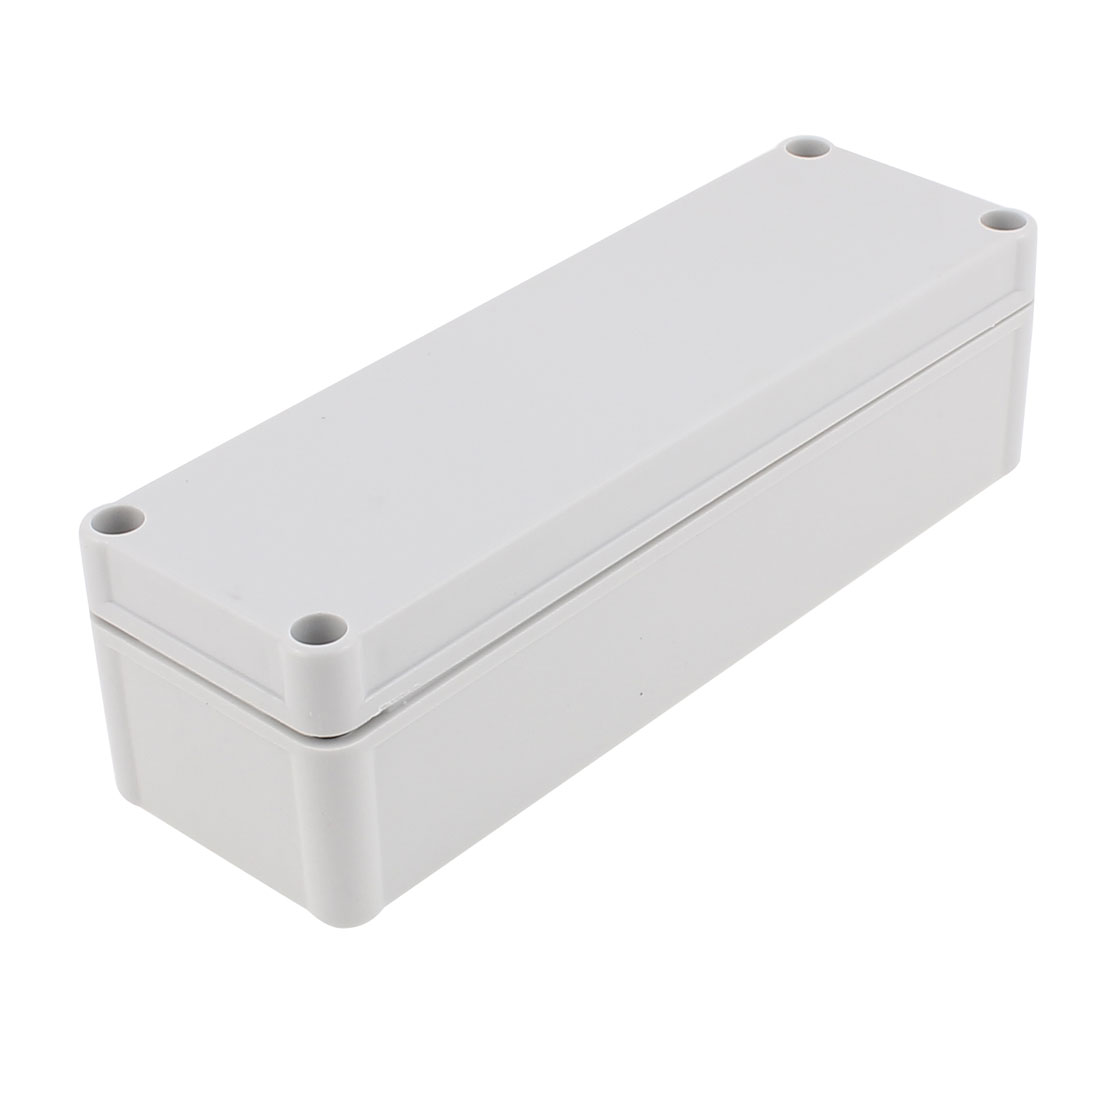 250 x 80 x 70mm Dustproof IP65 Junction Box Terminal Connecting Box Enclosure